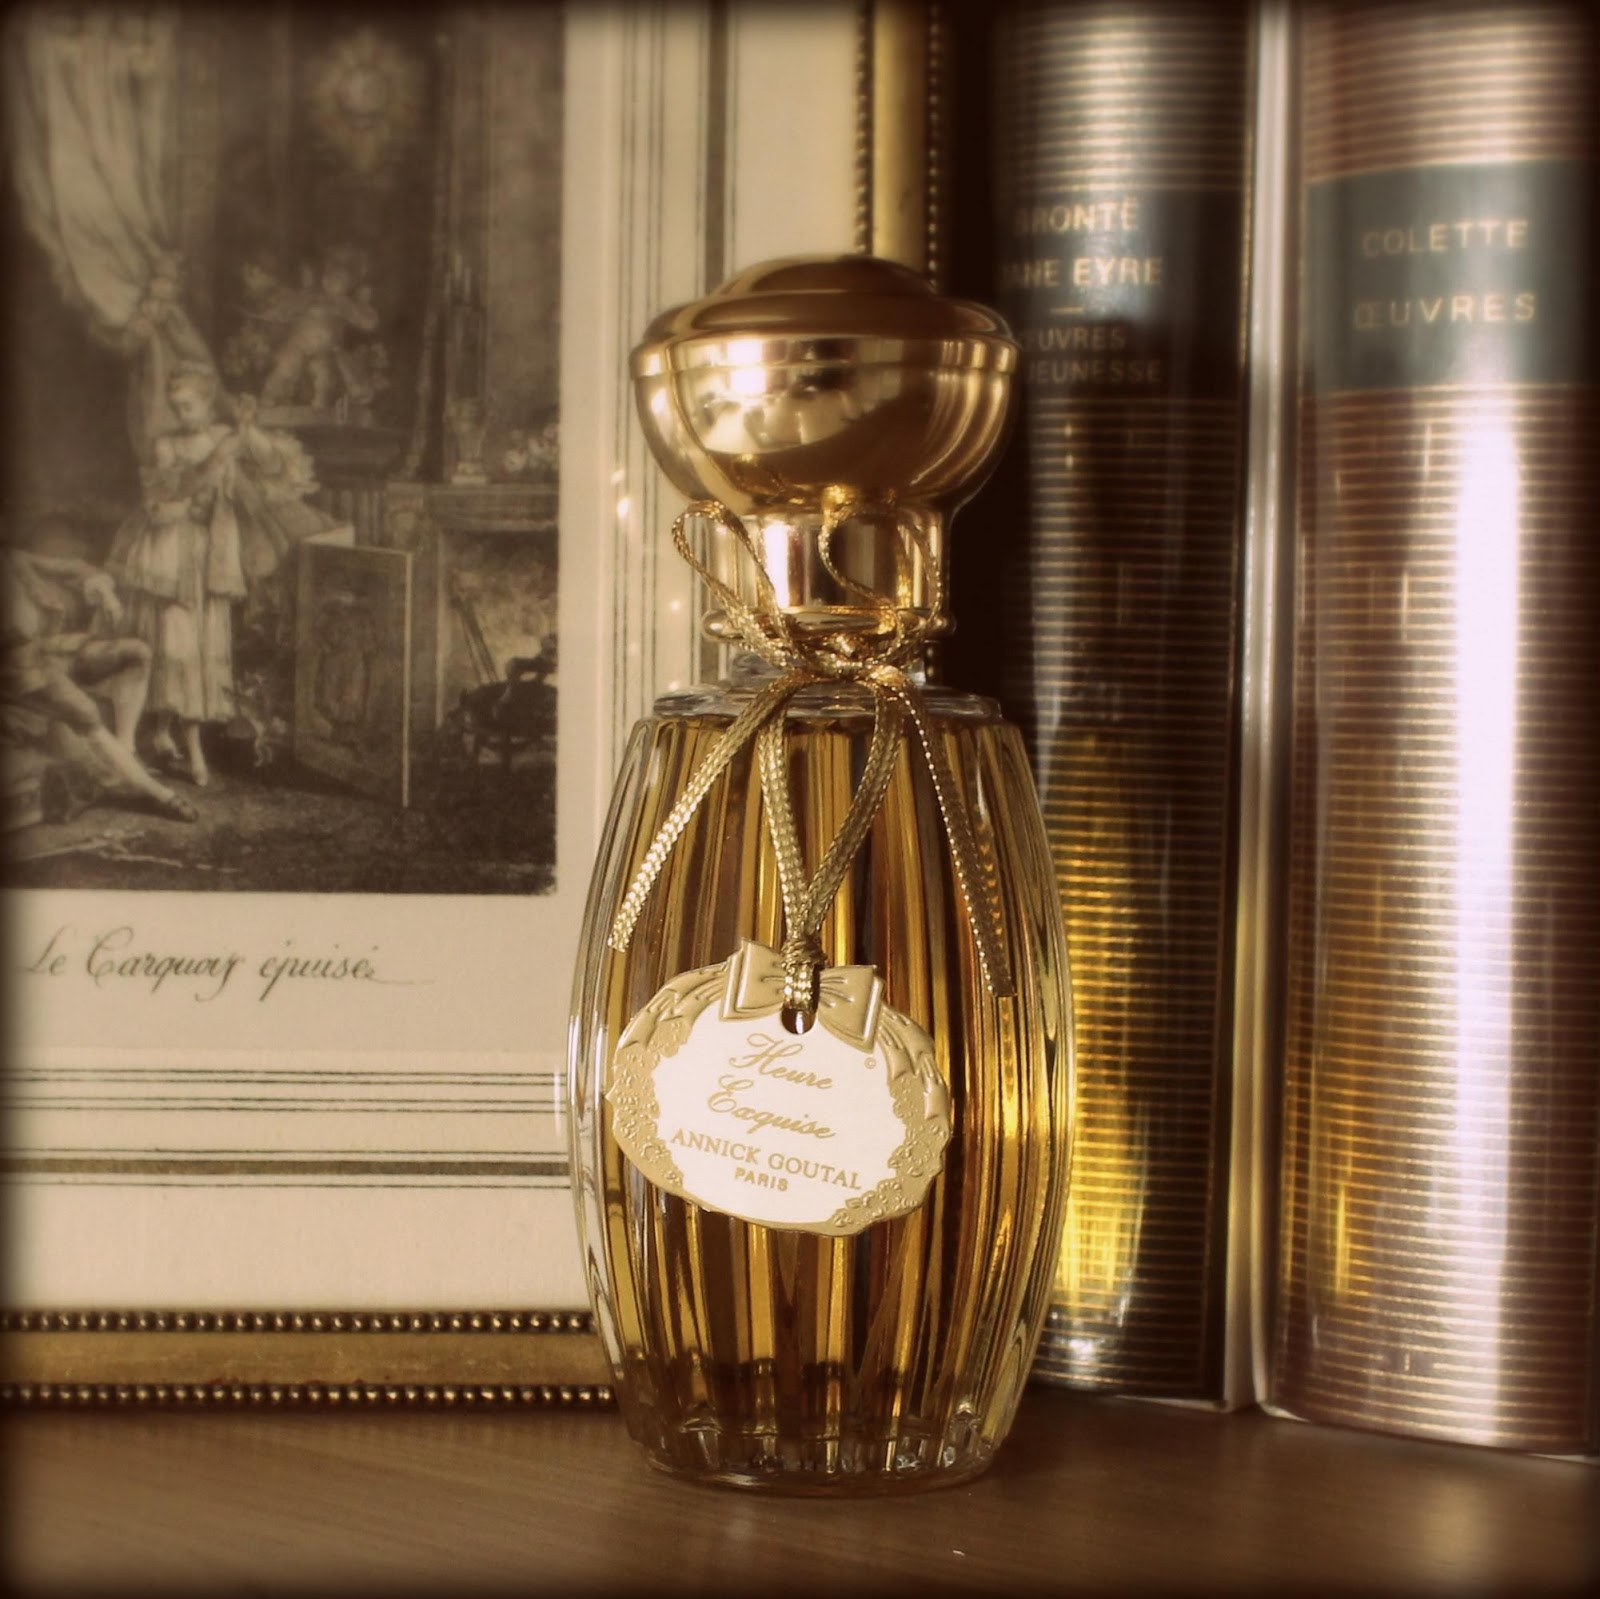 Heure Exquise, Annick Goutal/ Pic by Dominique A.